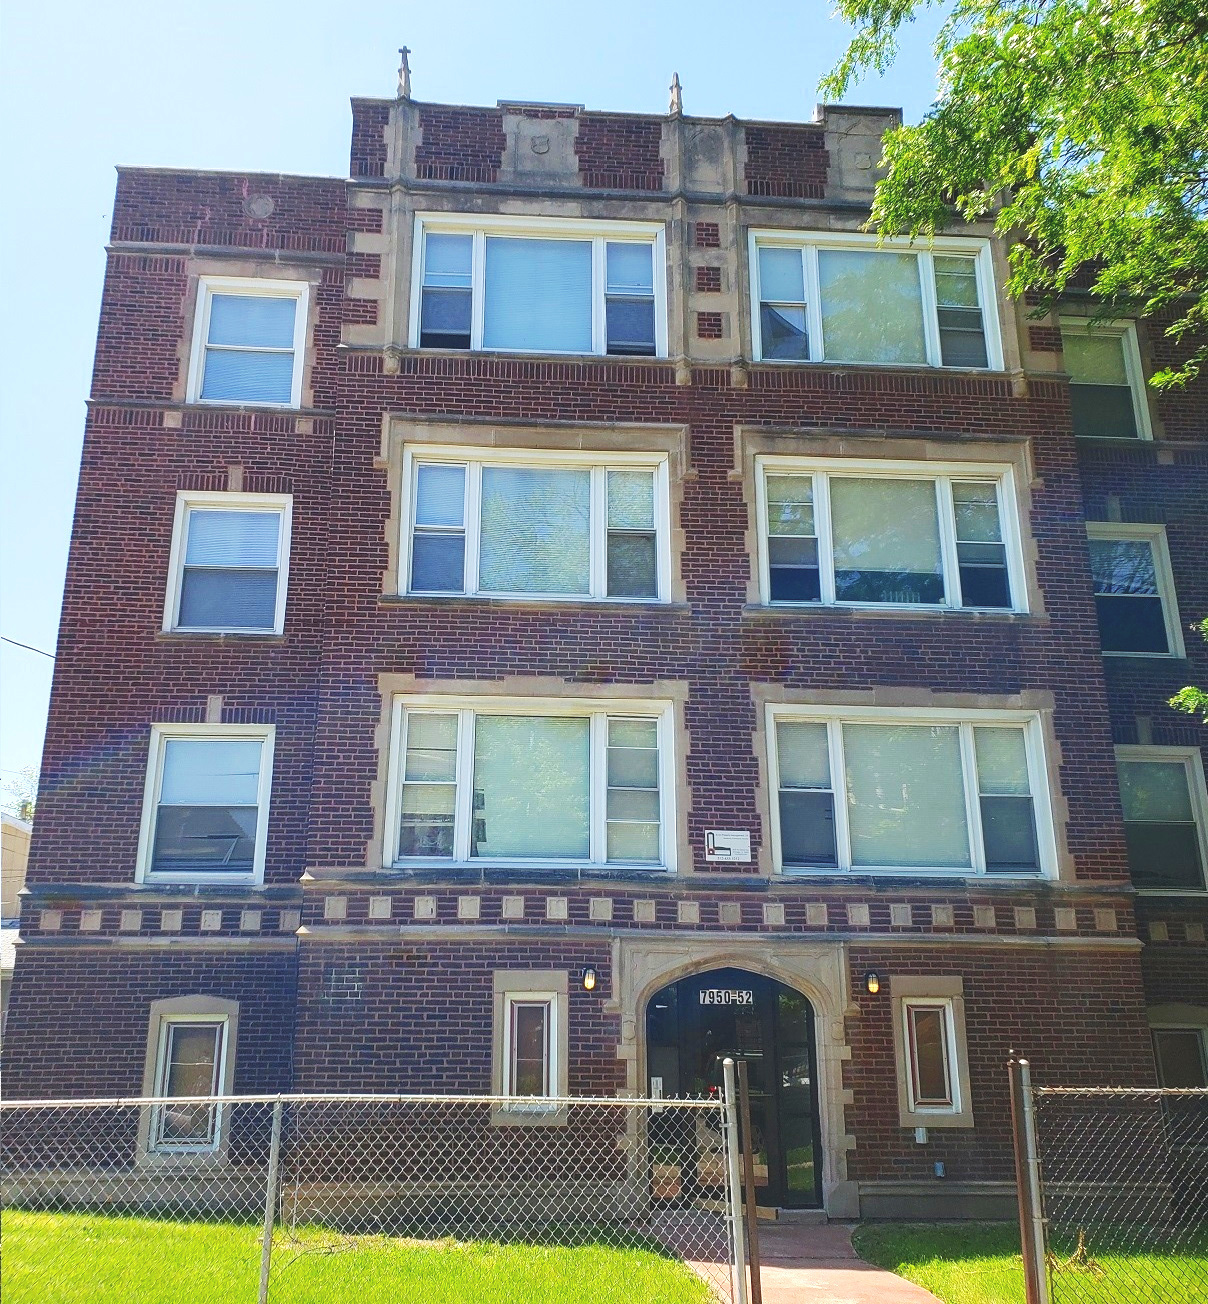 7952 S. Essex - Residential 6 flat